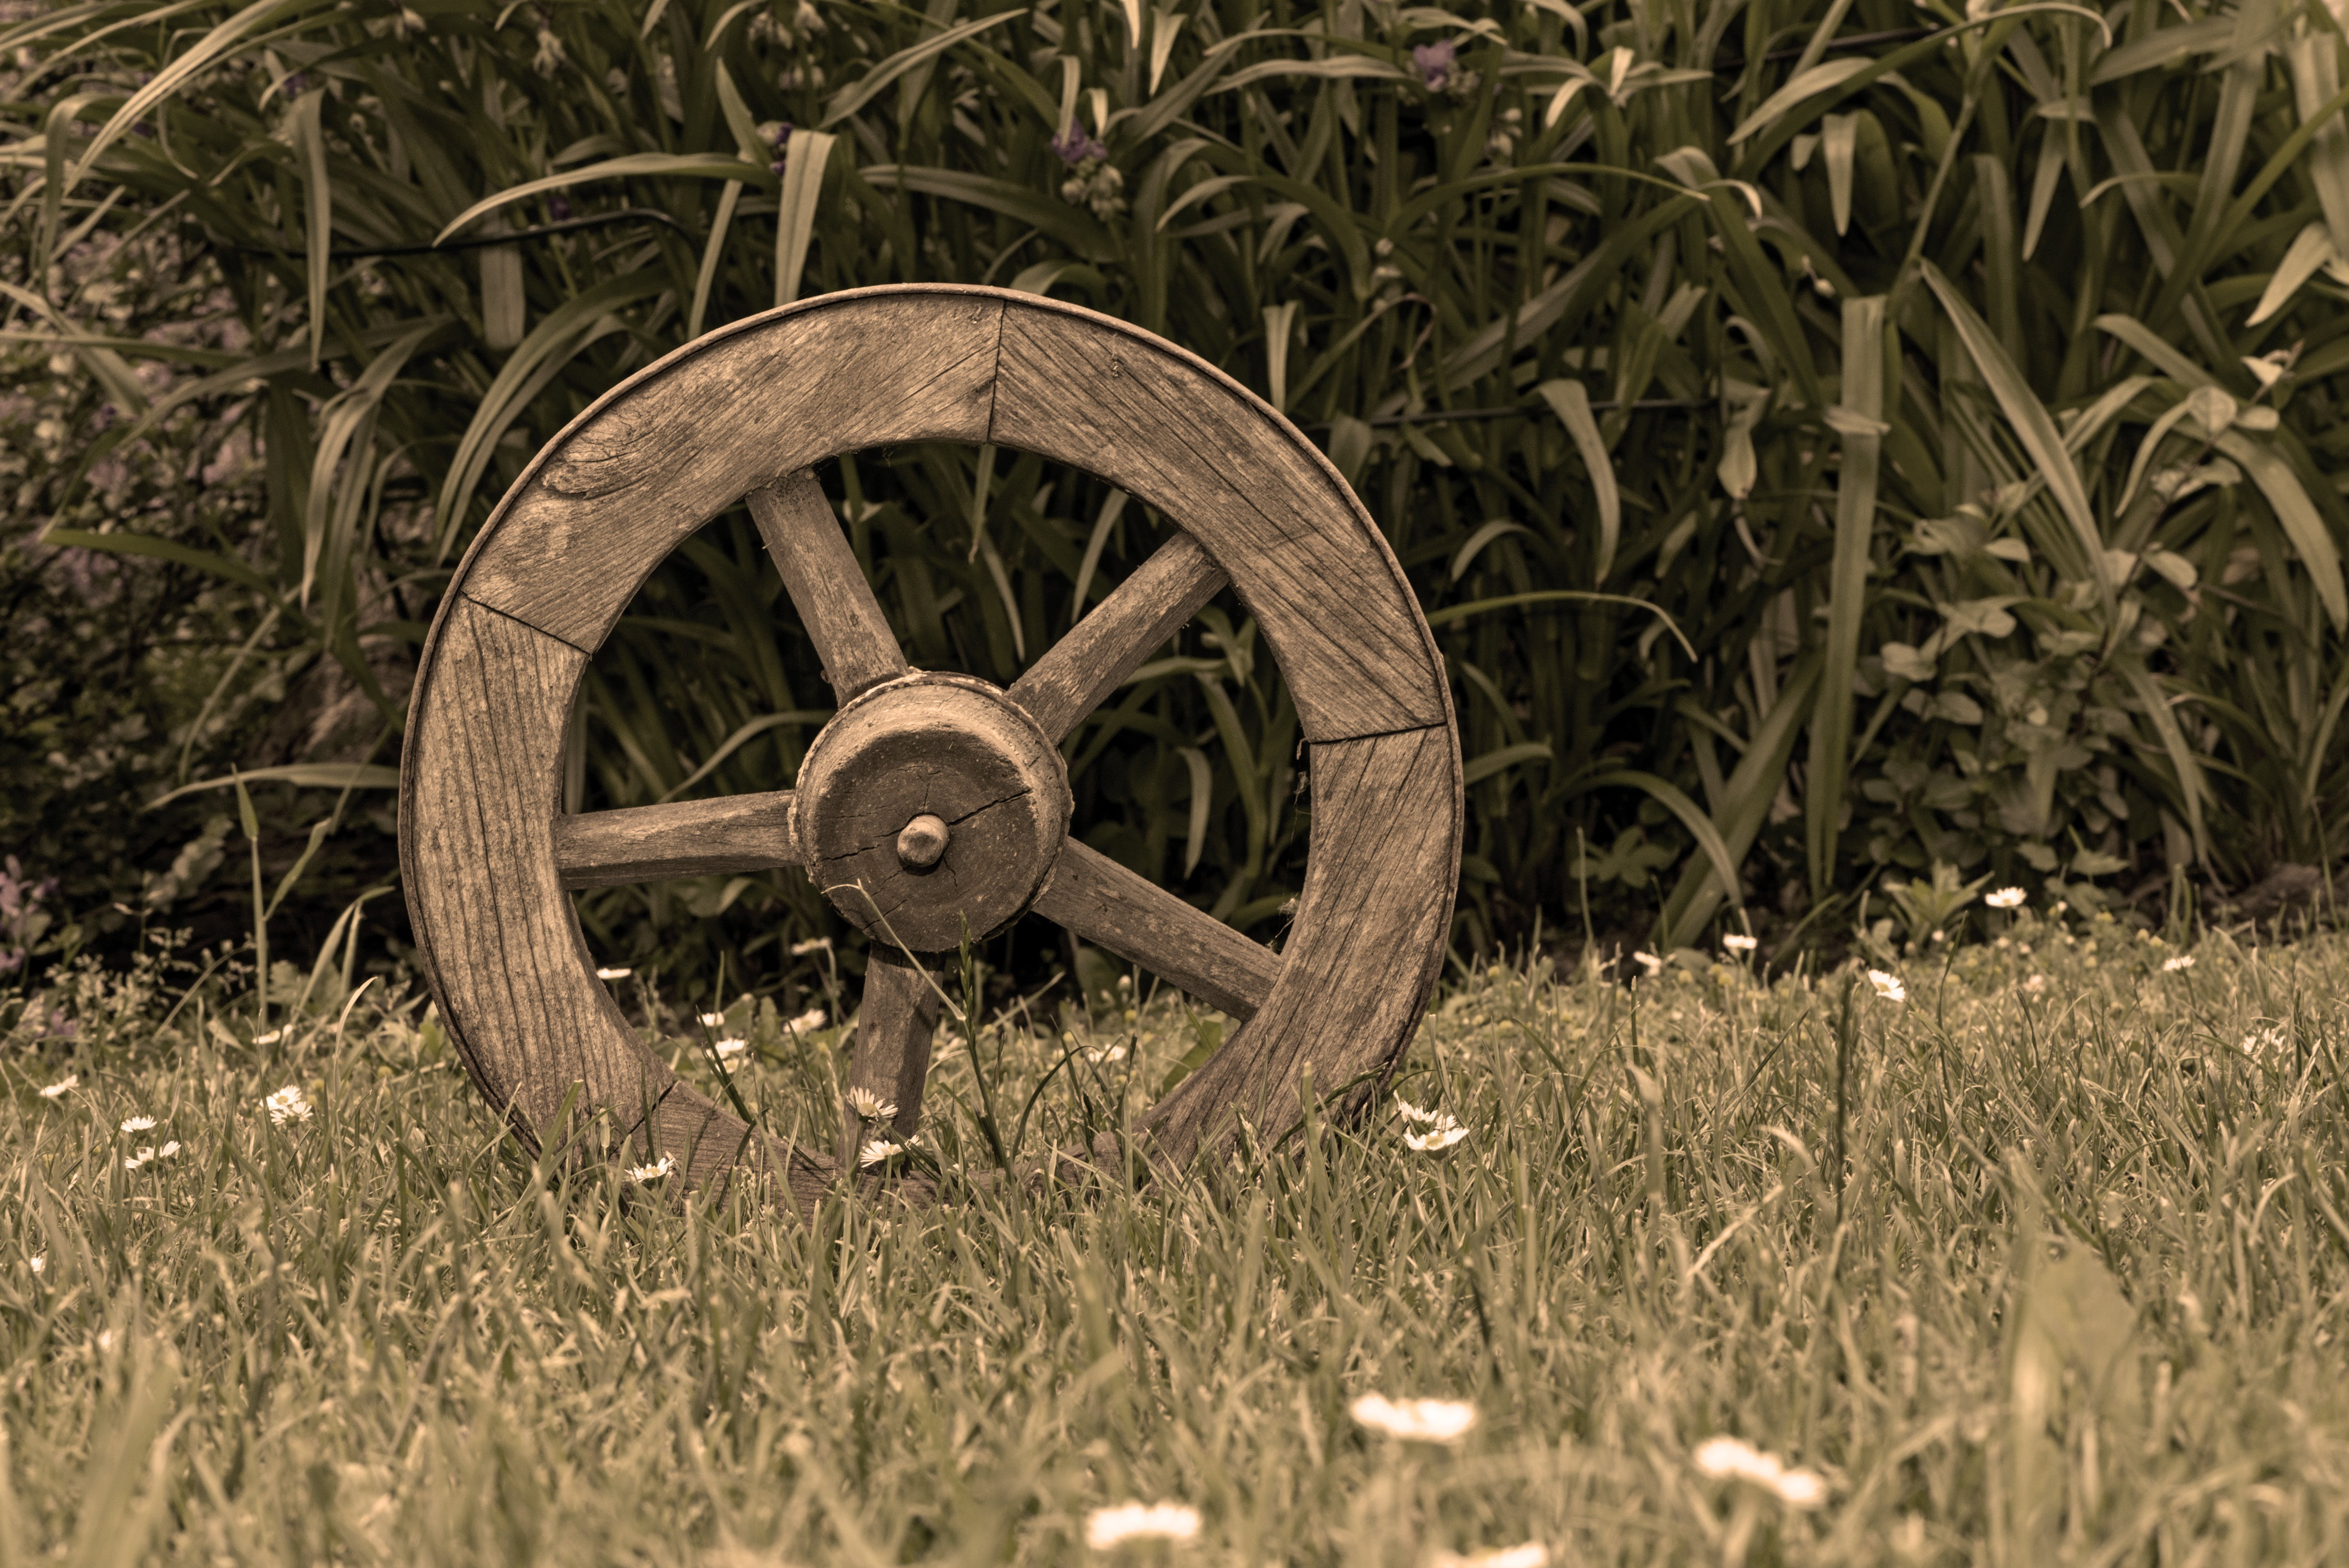 Brown Wooden Wheel on Top of Green Grass